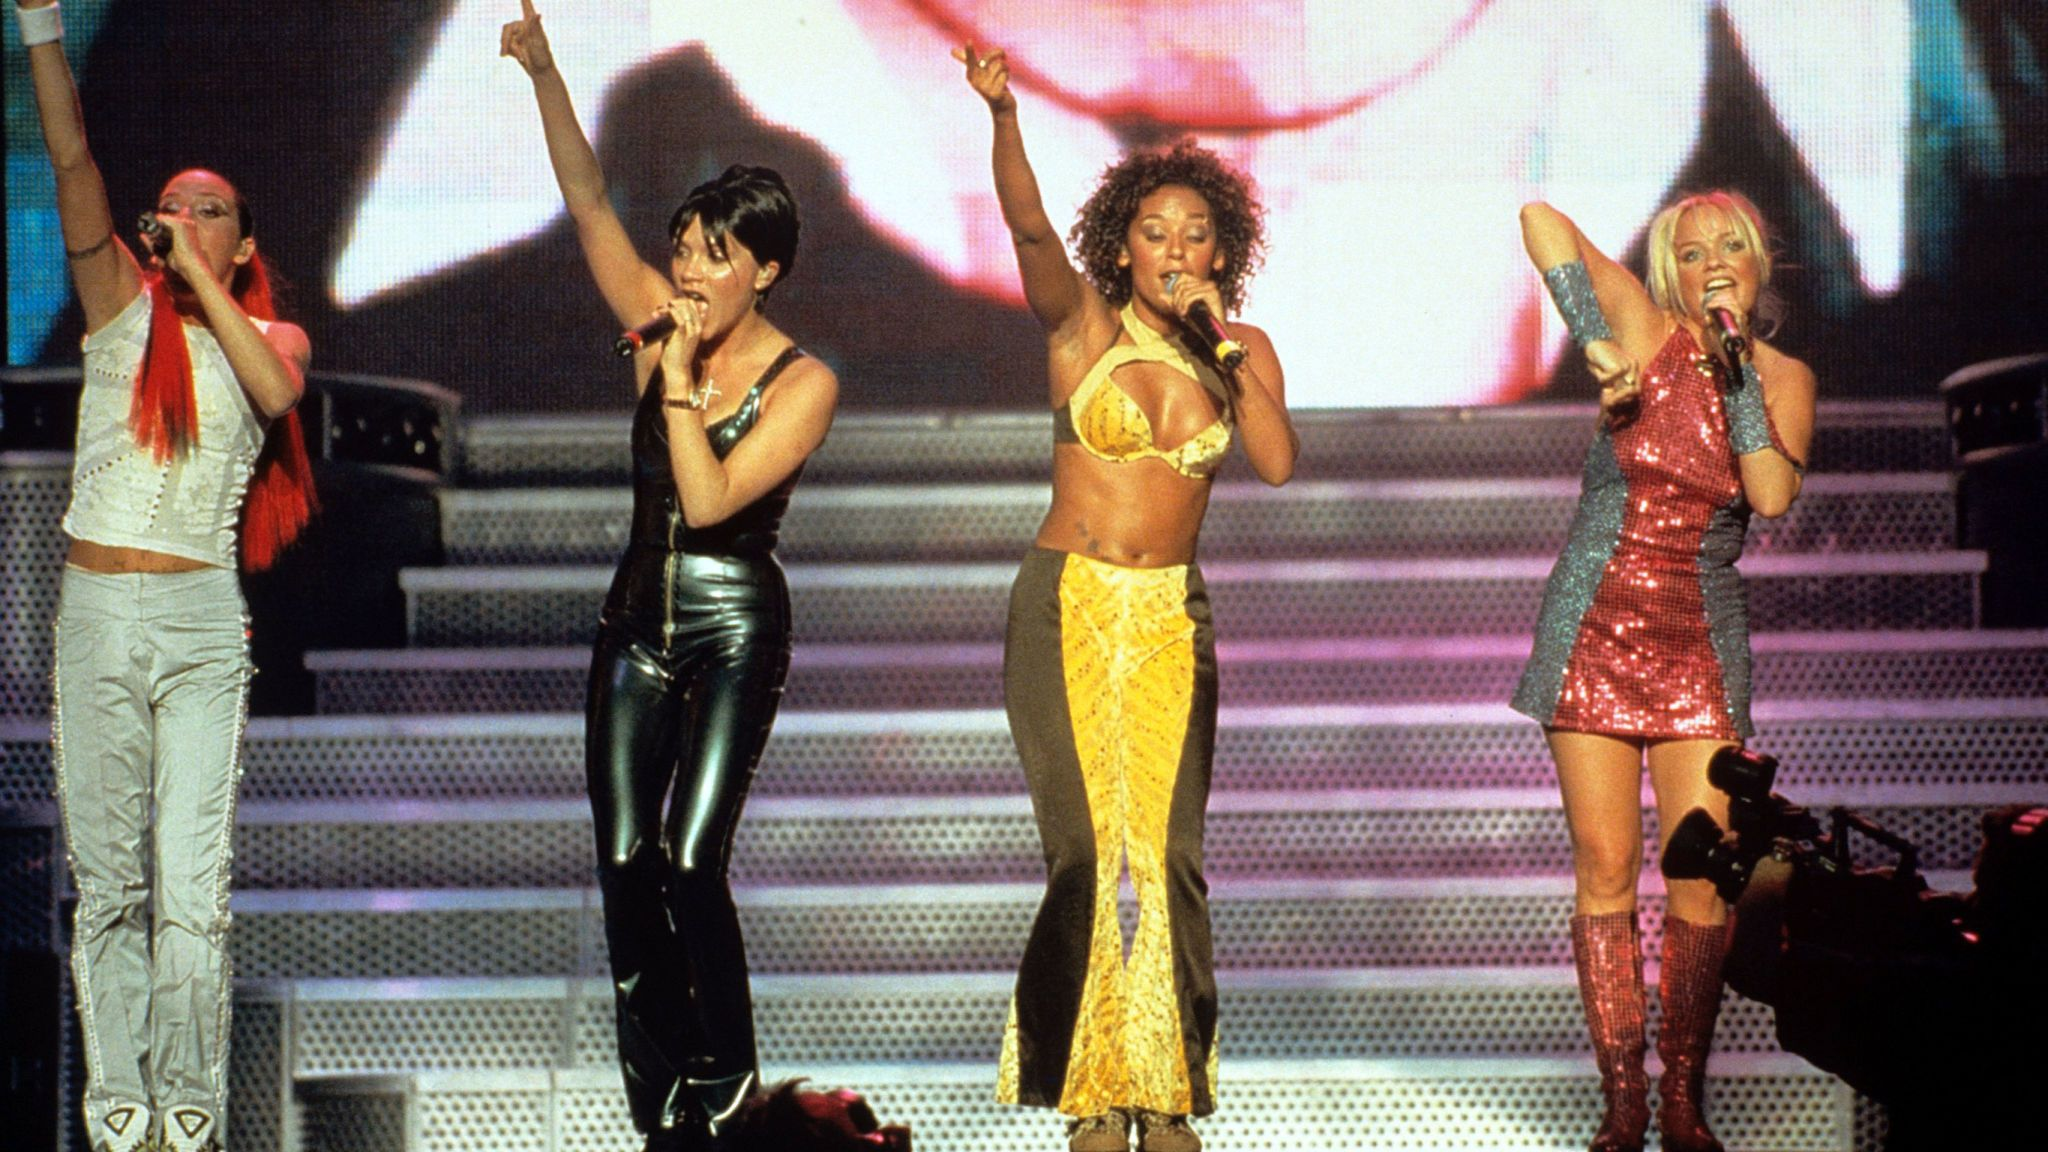 The Spice Girls continued as a foursome after Geri Halliwell's departure in 1998